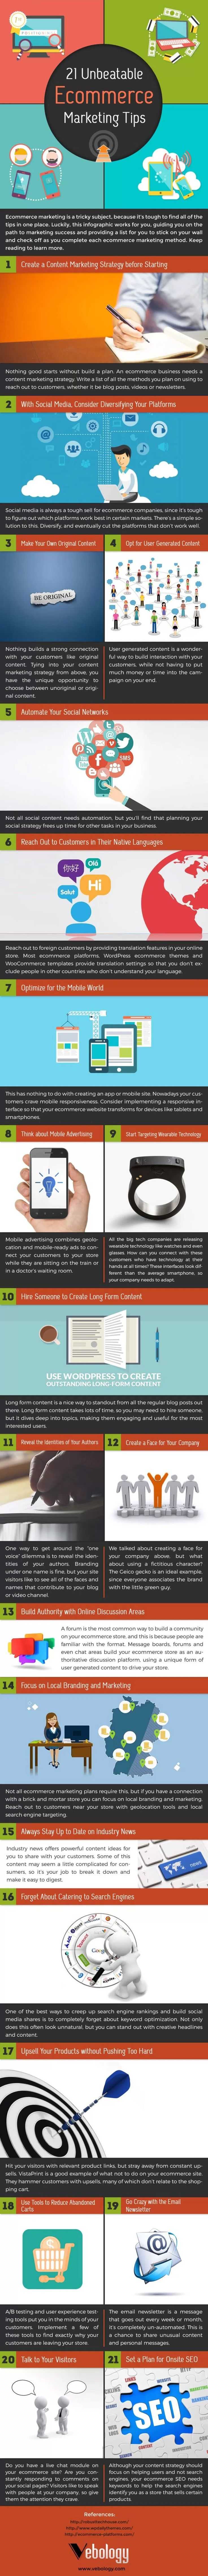 21 Unbeatable Ecommerce Marketing Tips to Generate More Online Sales [Infographic] - Red Website Design Blog